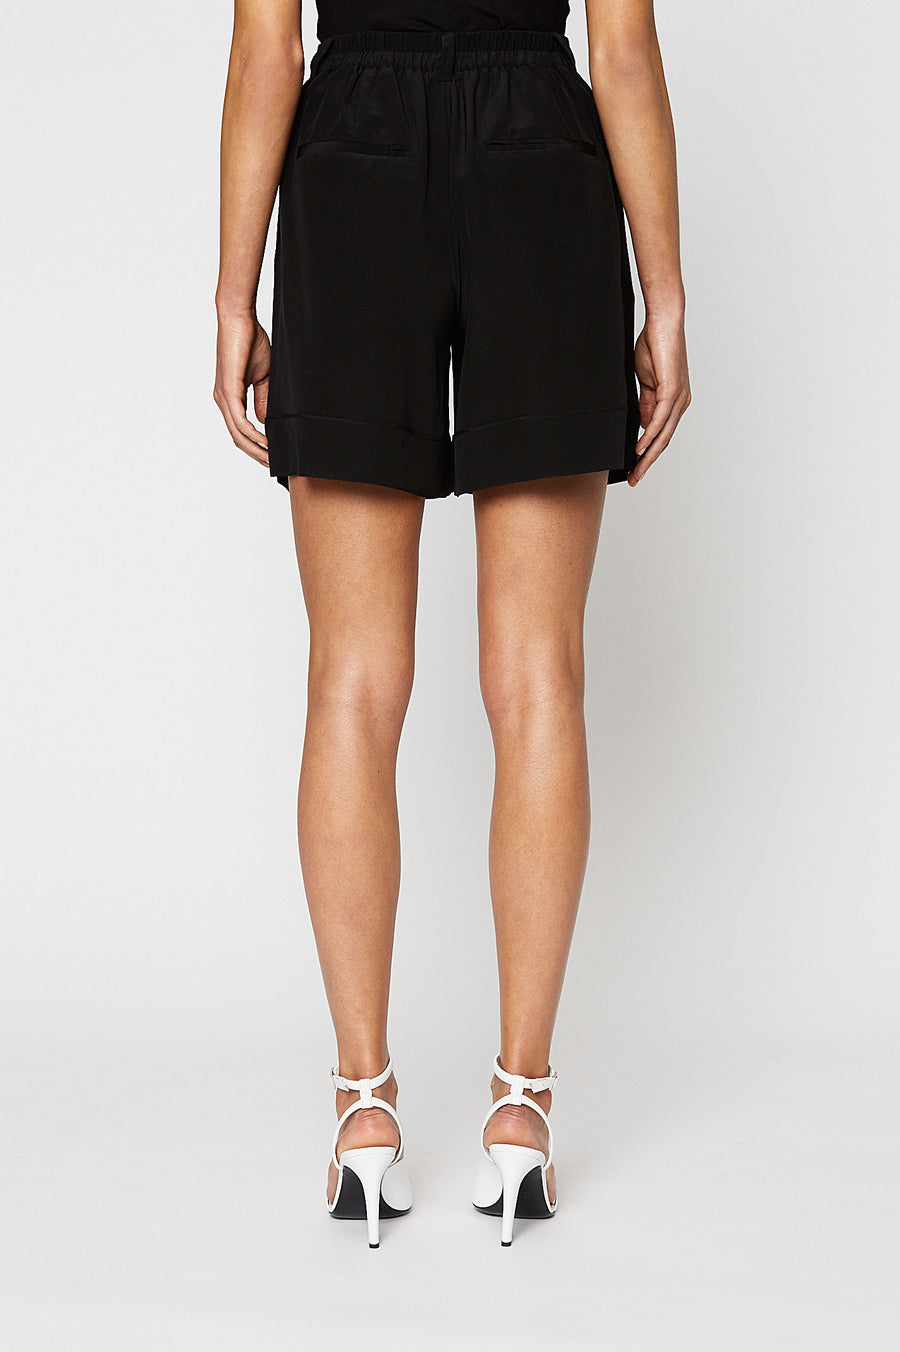 CDC SHORT, High Waist, Mid Calf, BLACK color